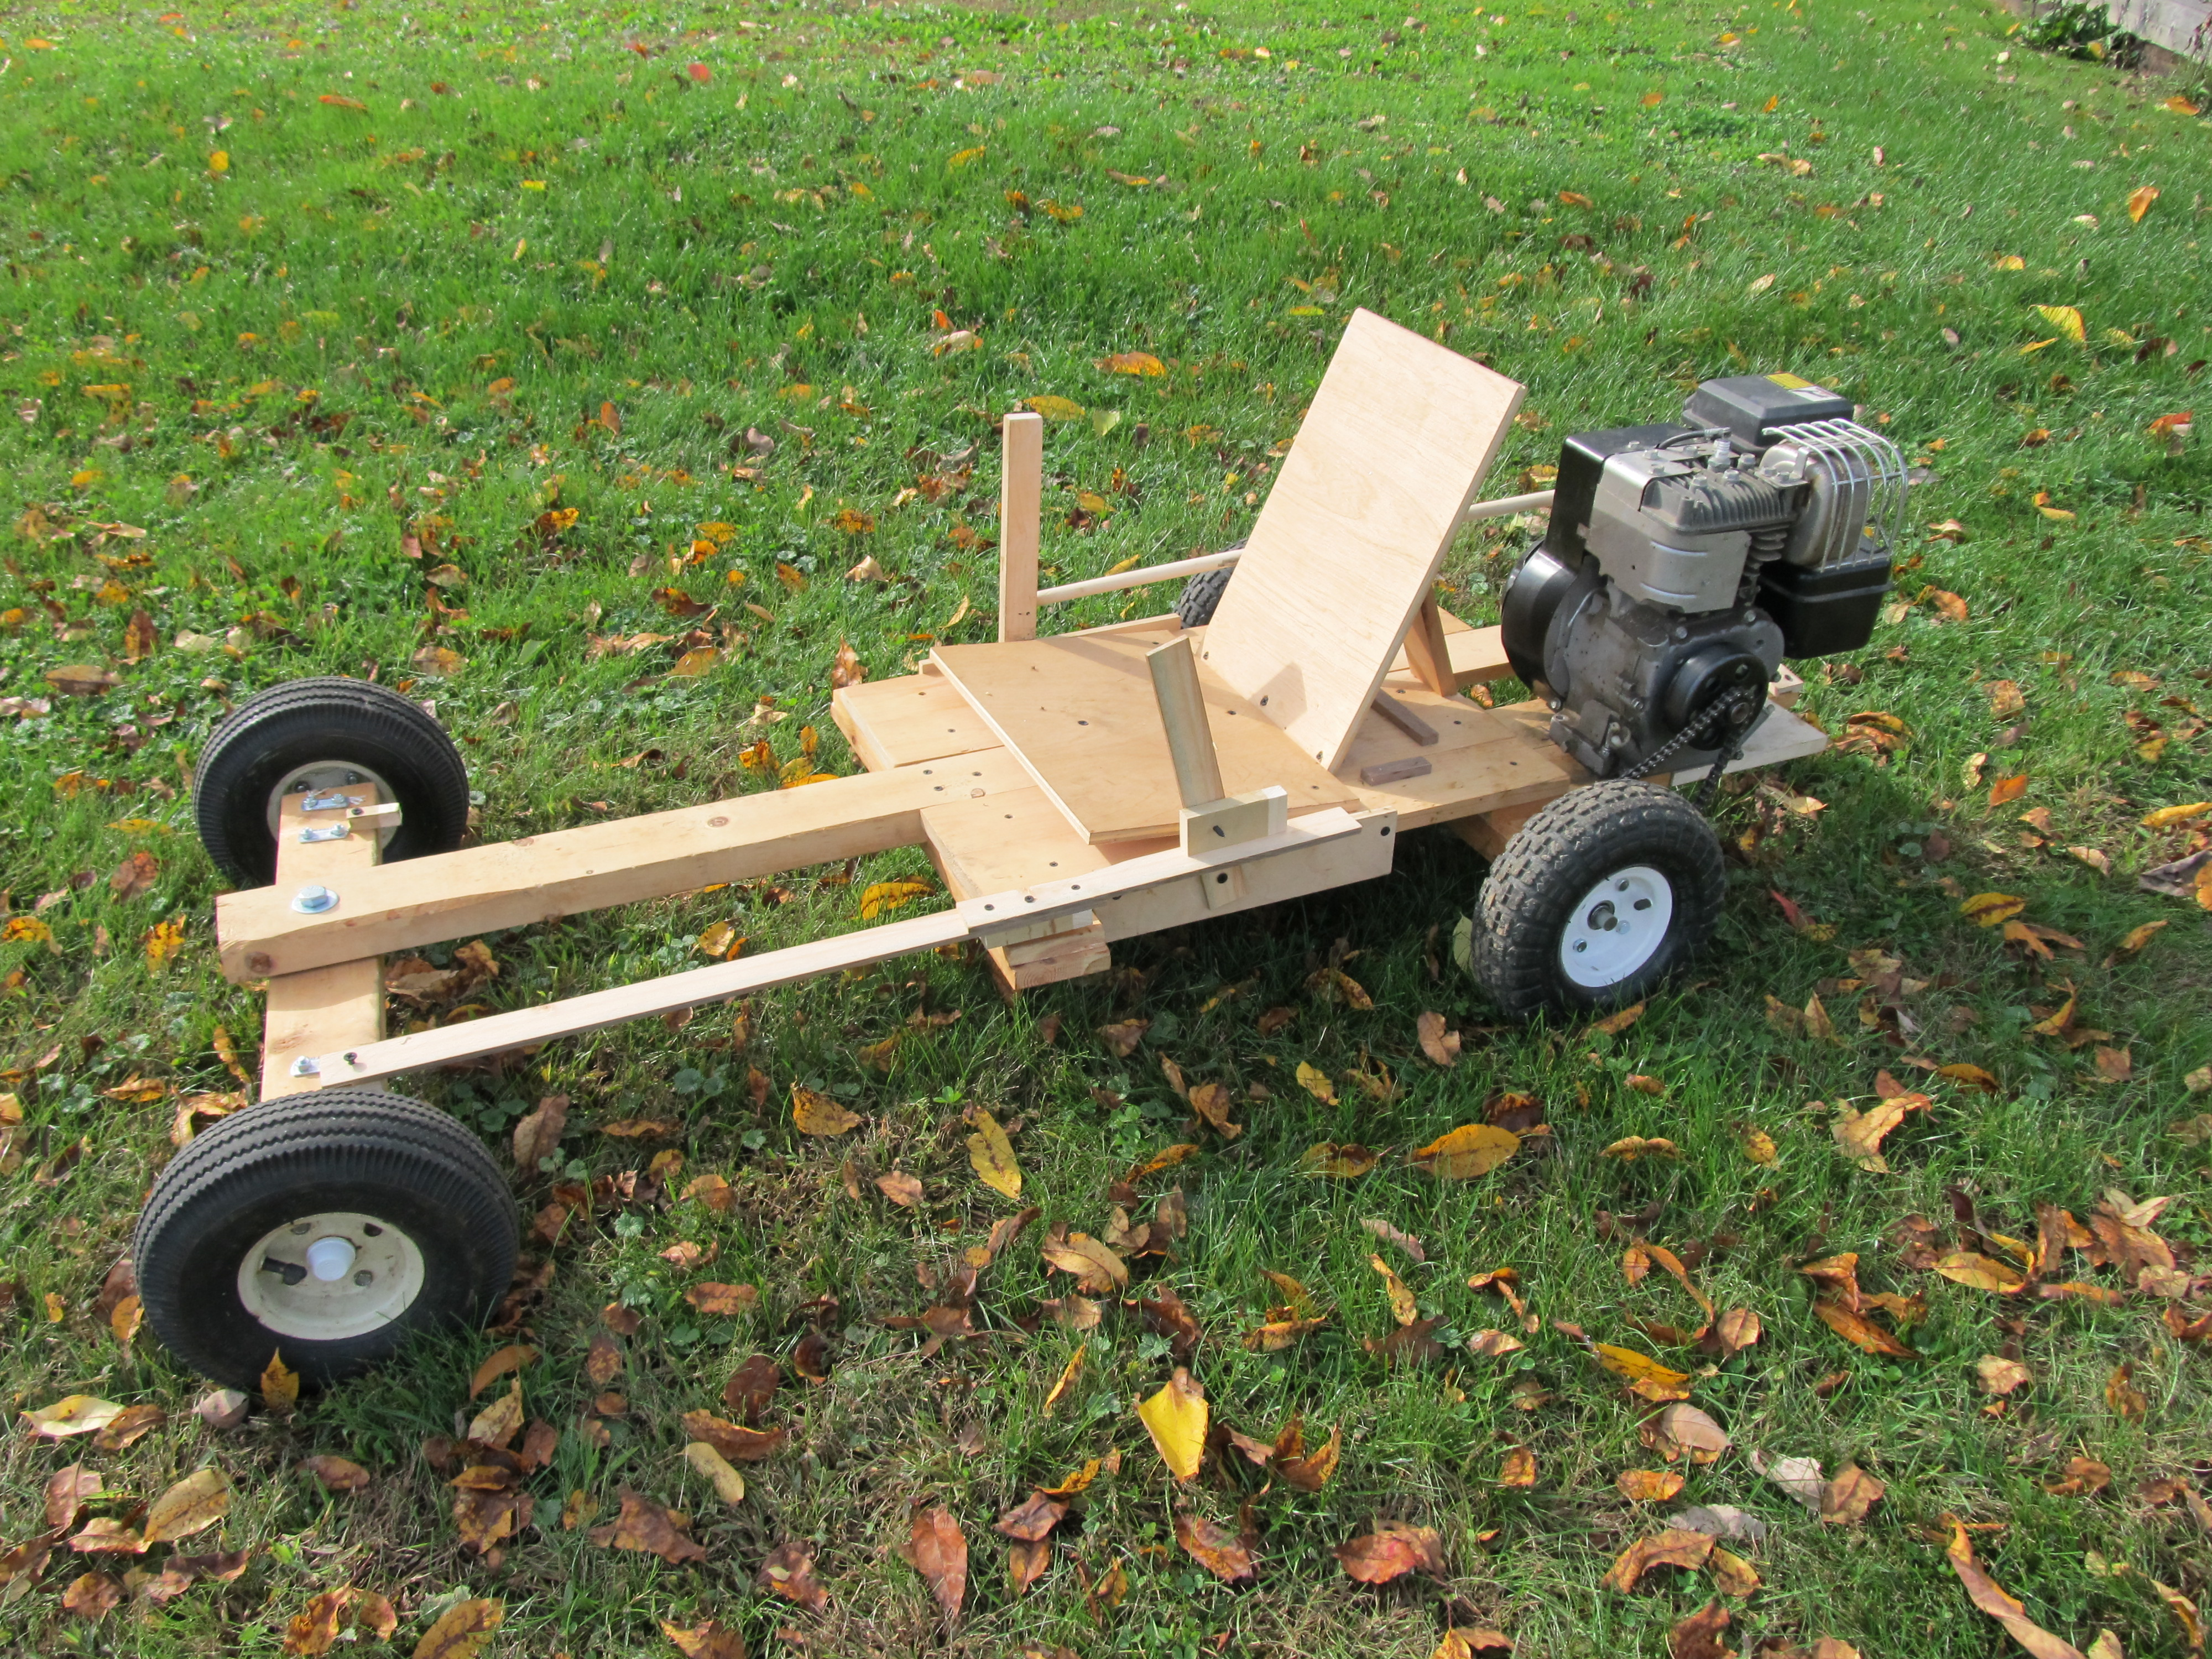 Homemade Wooden Gokart 6 Steps With Pictures Instructables